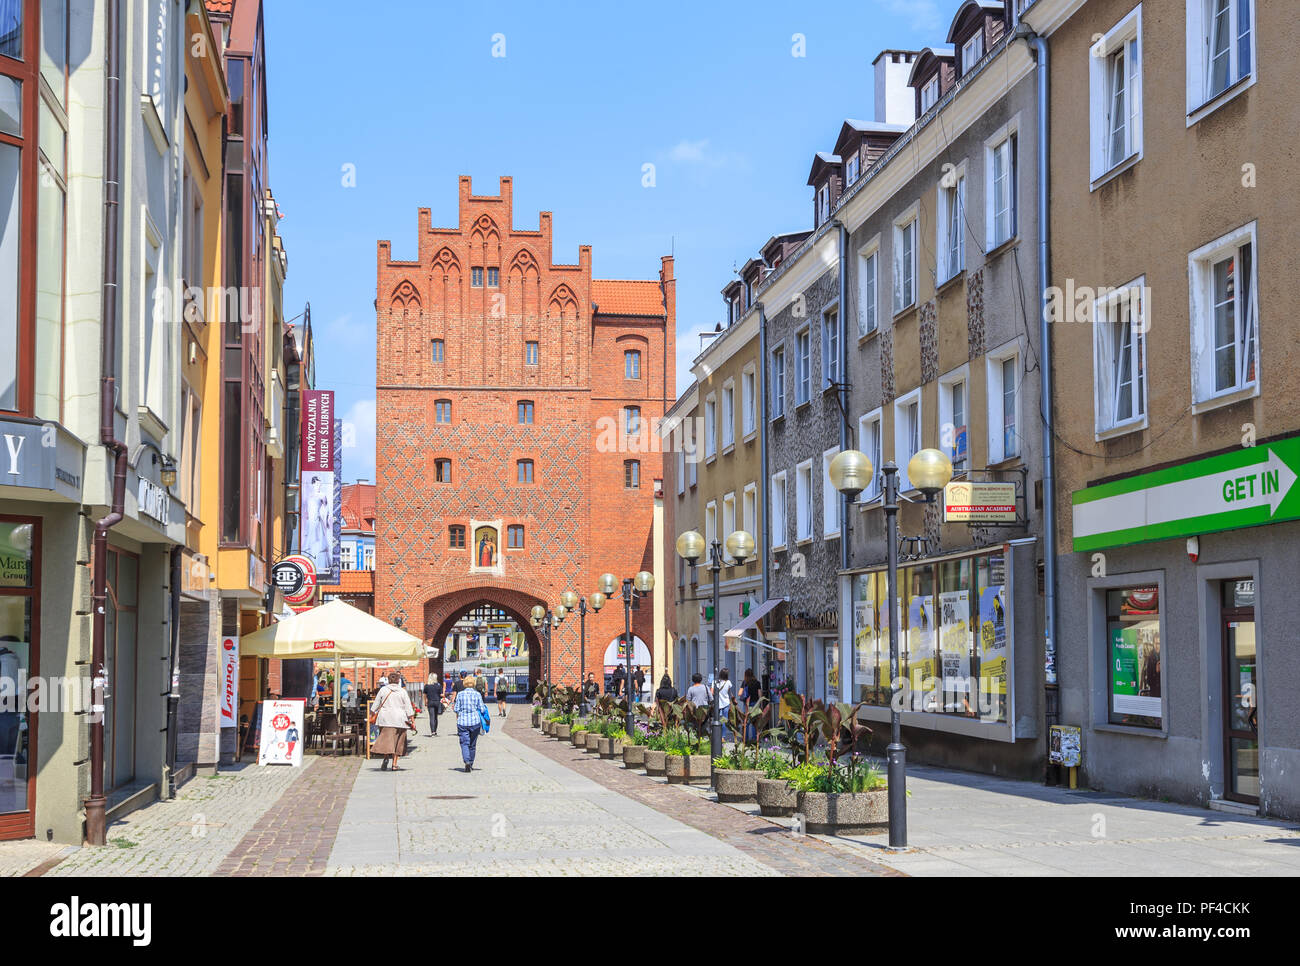 OLSZTYN, POLAND: Upper Gate in old town, called High Gate (polish: Brama Wysoka) - city gate existing since the 14th century Stock Photo